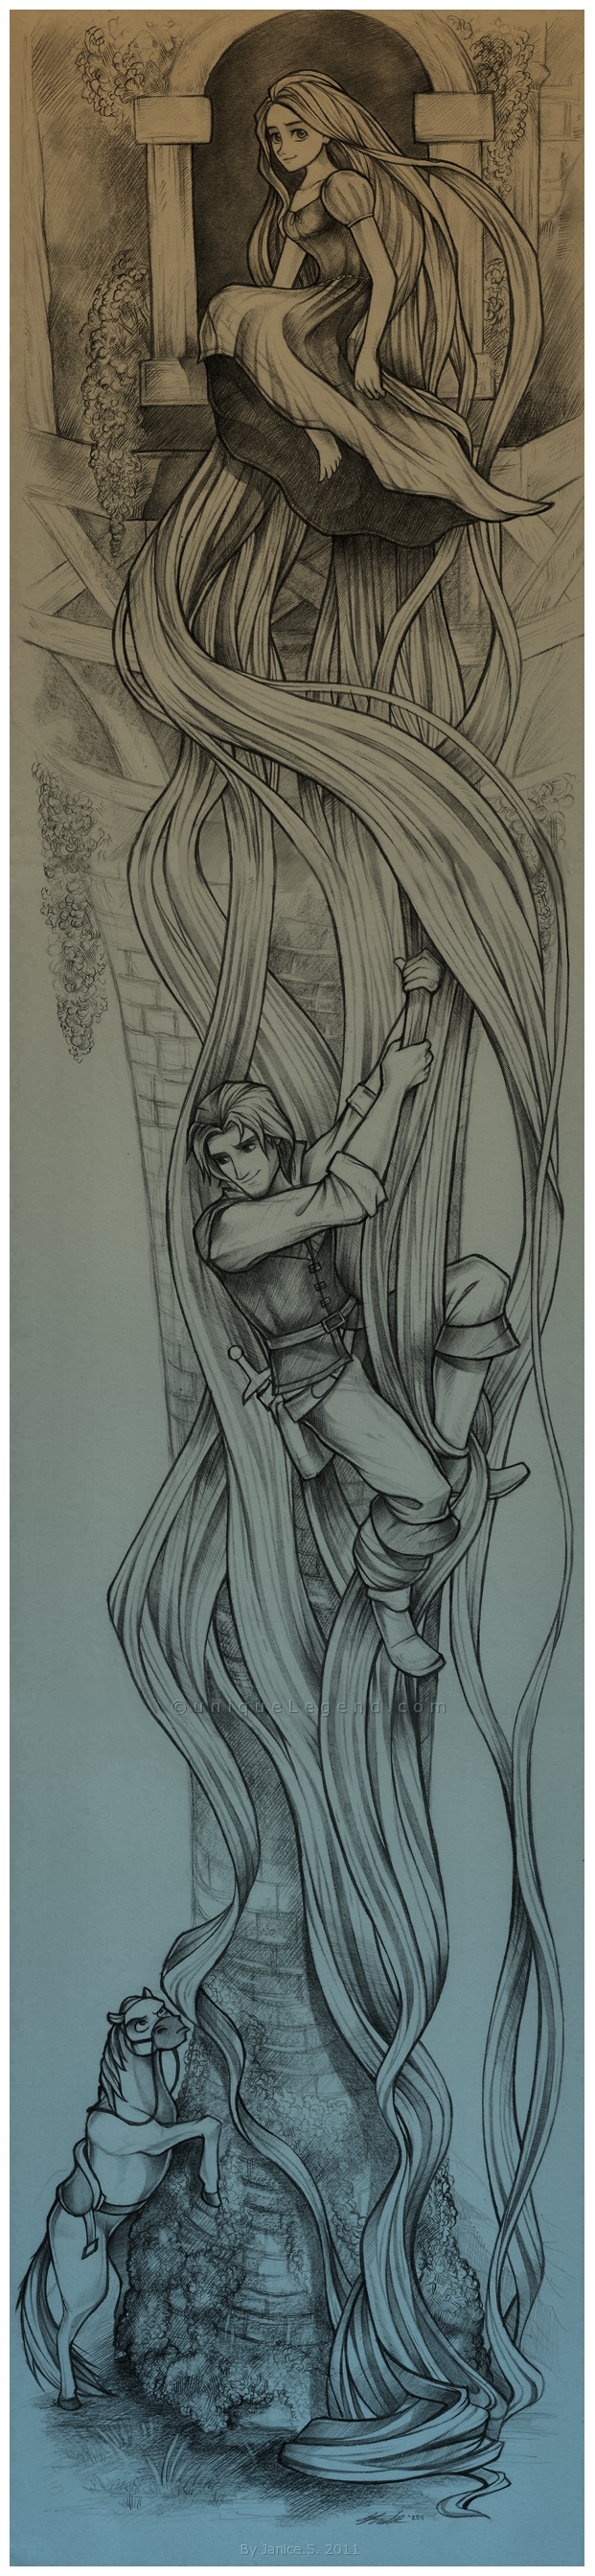 Disney - Tangled by EternaLegend